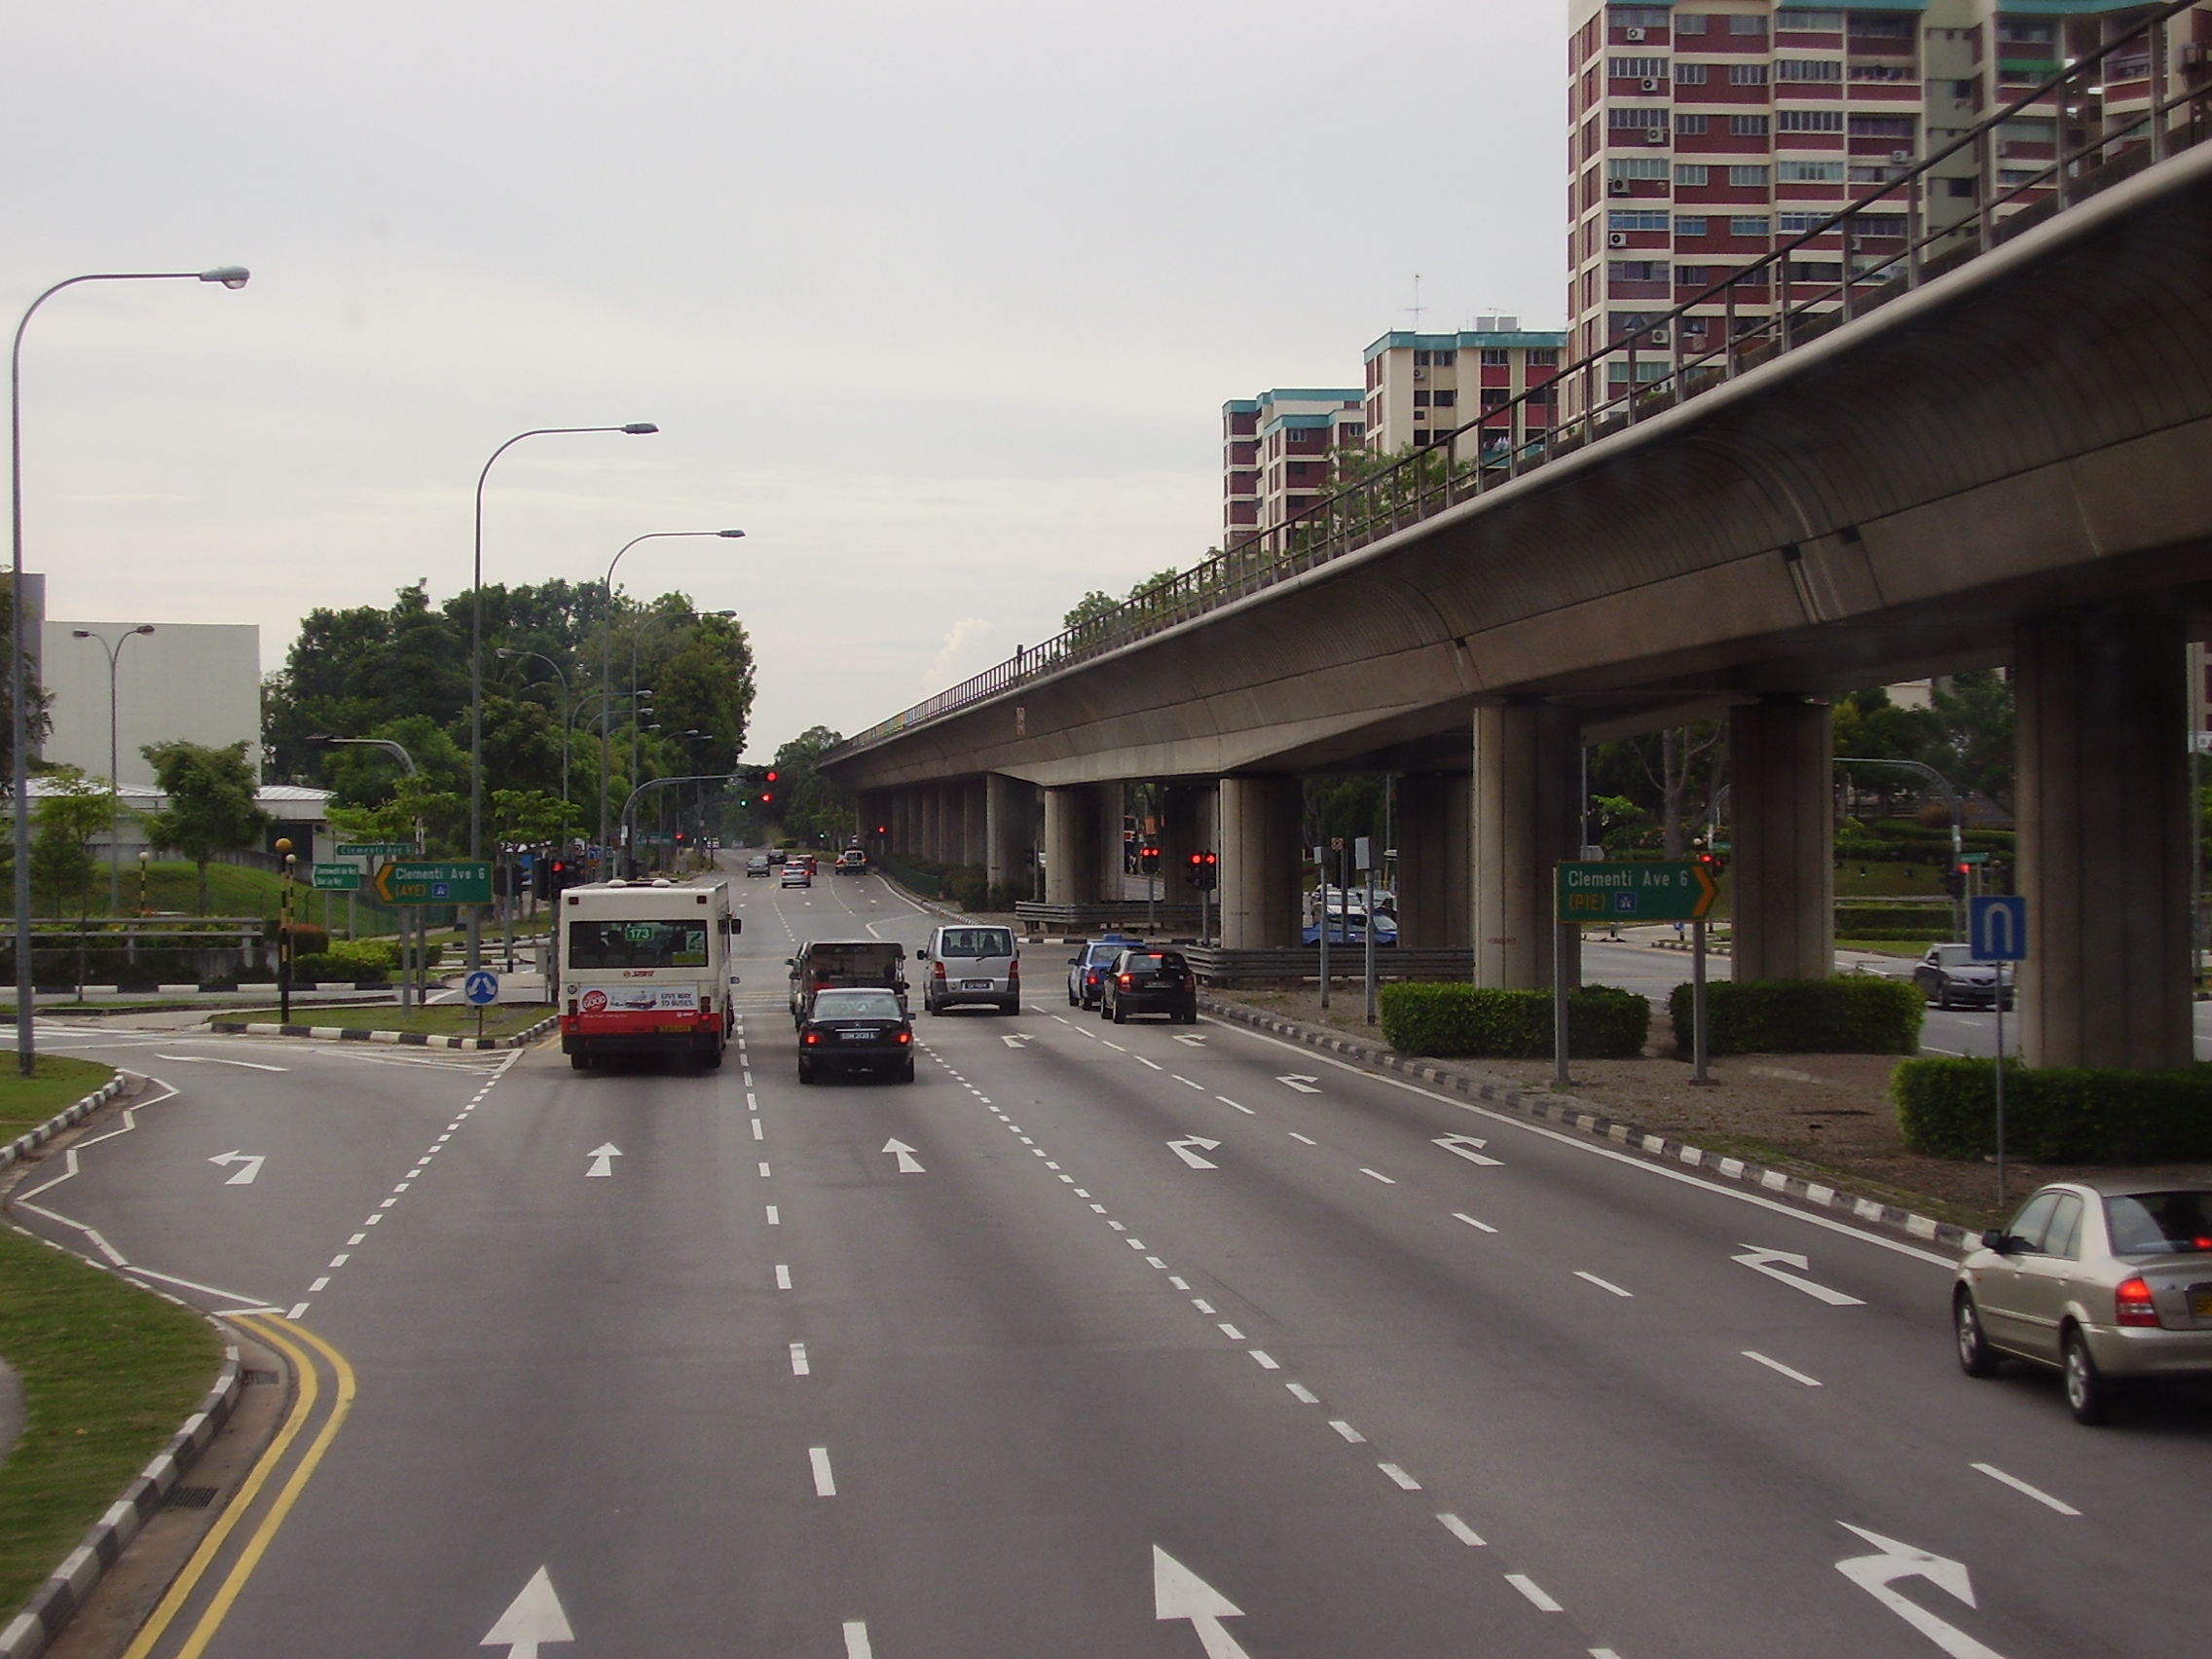 filecommonwealth ave west bef clementi ave    - filecommonwealth ave west bef clementi ave